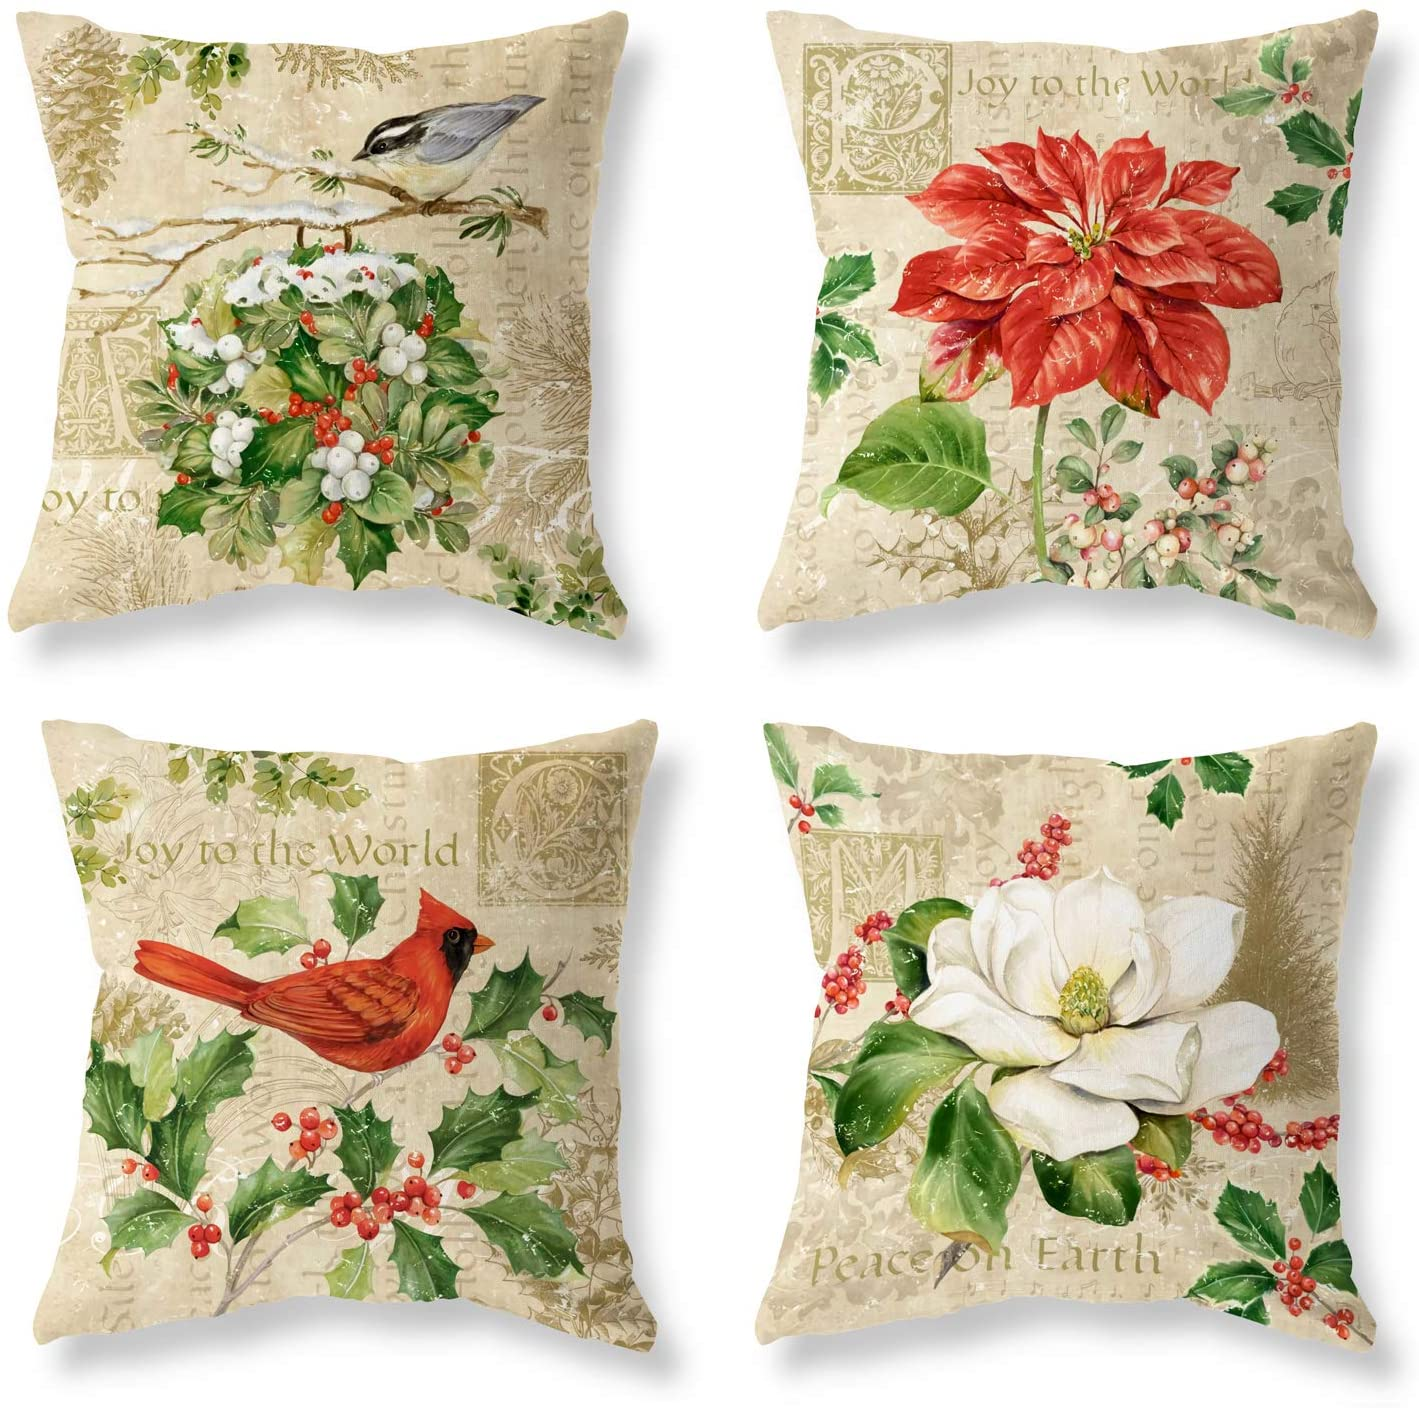 Set of 4 Christmas Pillow Covers Merry Christmas Throw Pillow Cover Cushion Covers Winter Autumn Red Bird Flower Pillow Covers Square Pillowcase Decoration for Christmas Sofa Bed Chair Car 18 x 18